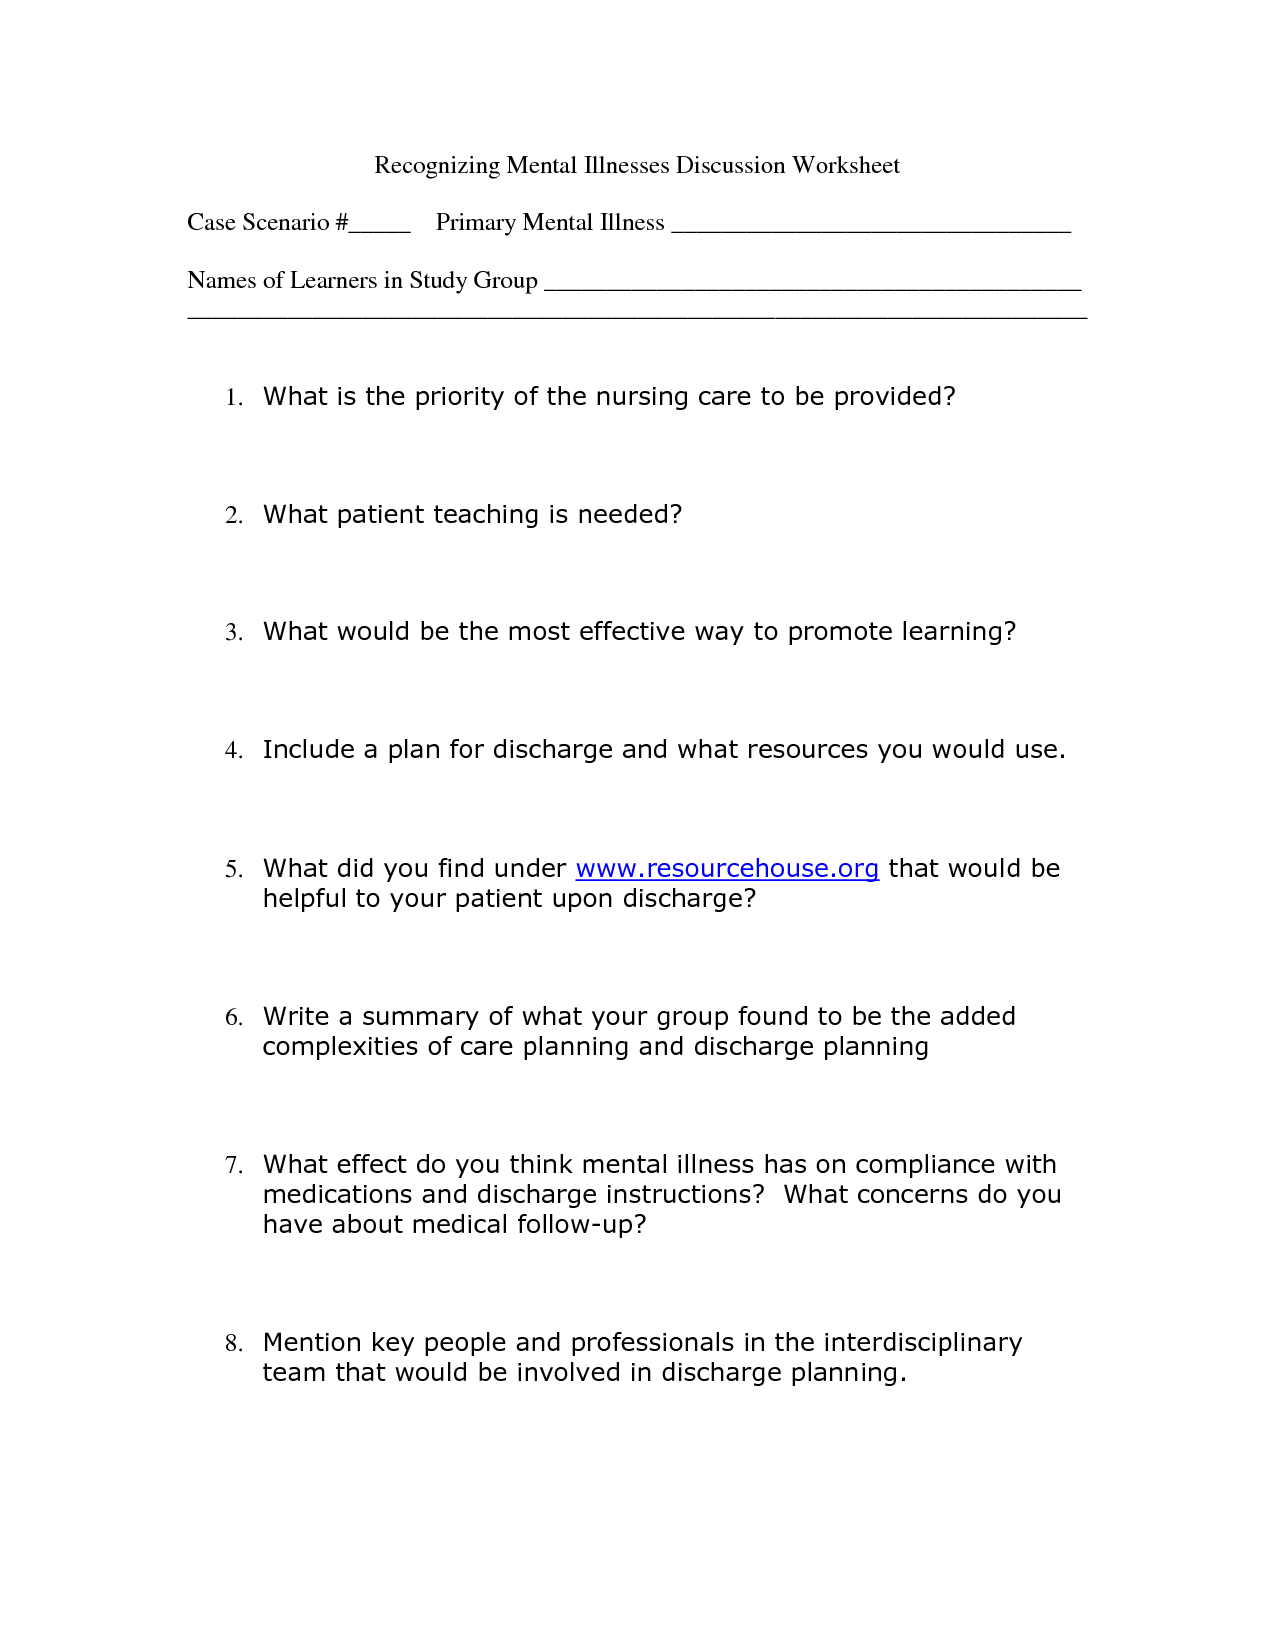 Printables Mental Health Group Worksheets Kigose Thousands Of Printable Activities